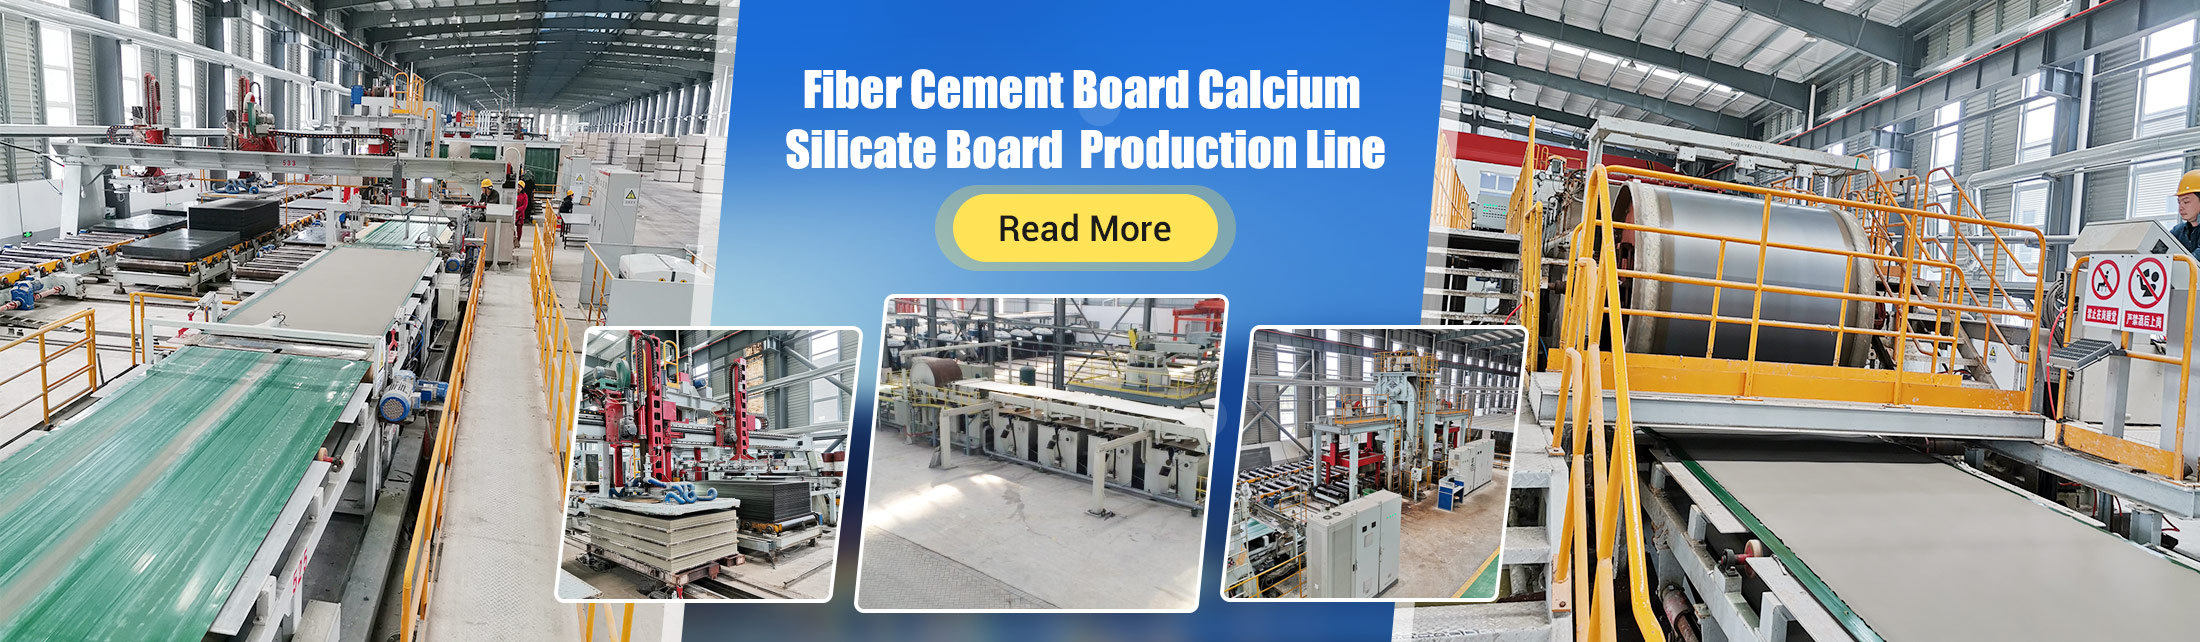 Fiber Cement Board(FC Board)/Calcium Silicate Board Production Line